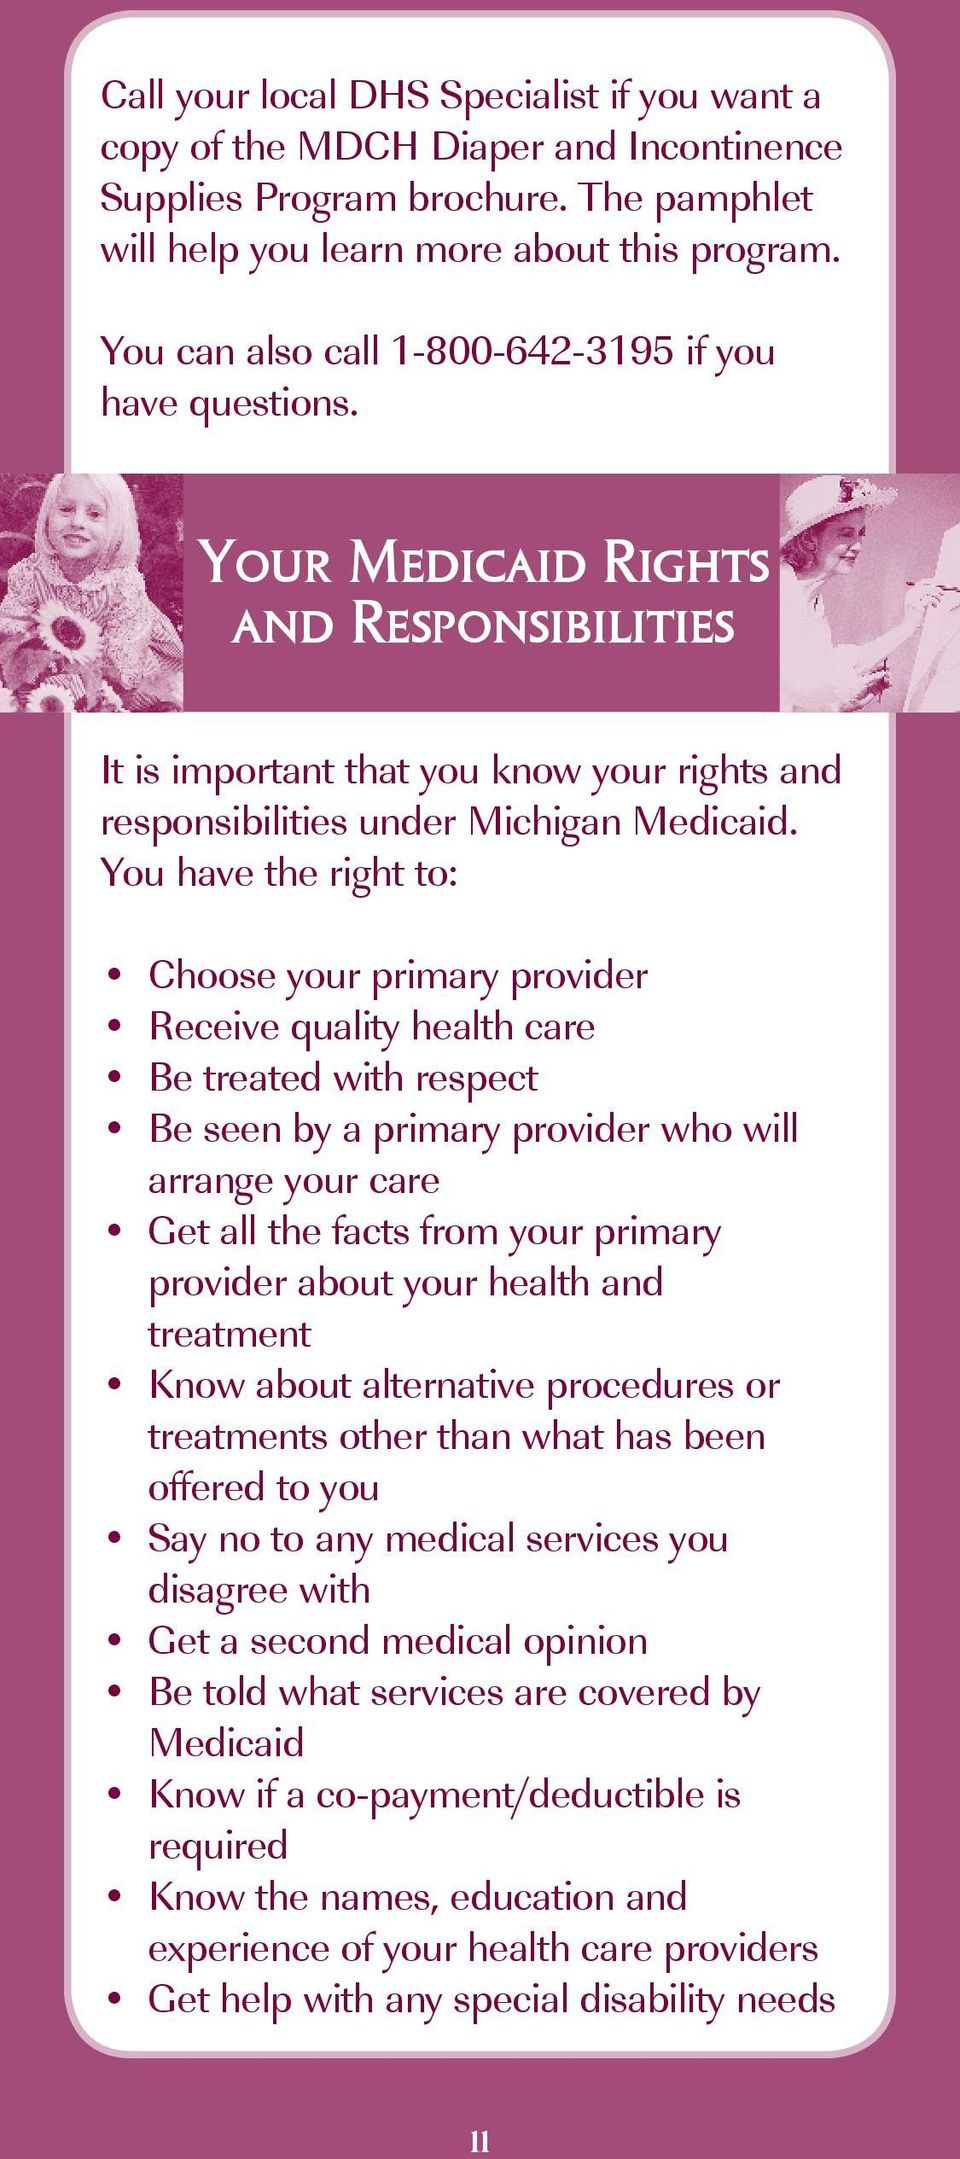 You have the right to: Choose your primary provider Receive quality health care Be treated with respect Be seen by a primary provider who will arrange your care Get all the facts from your primary